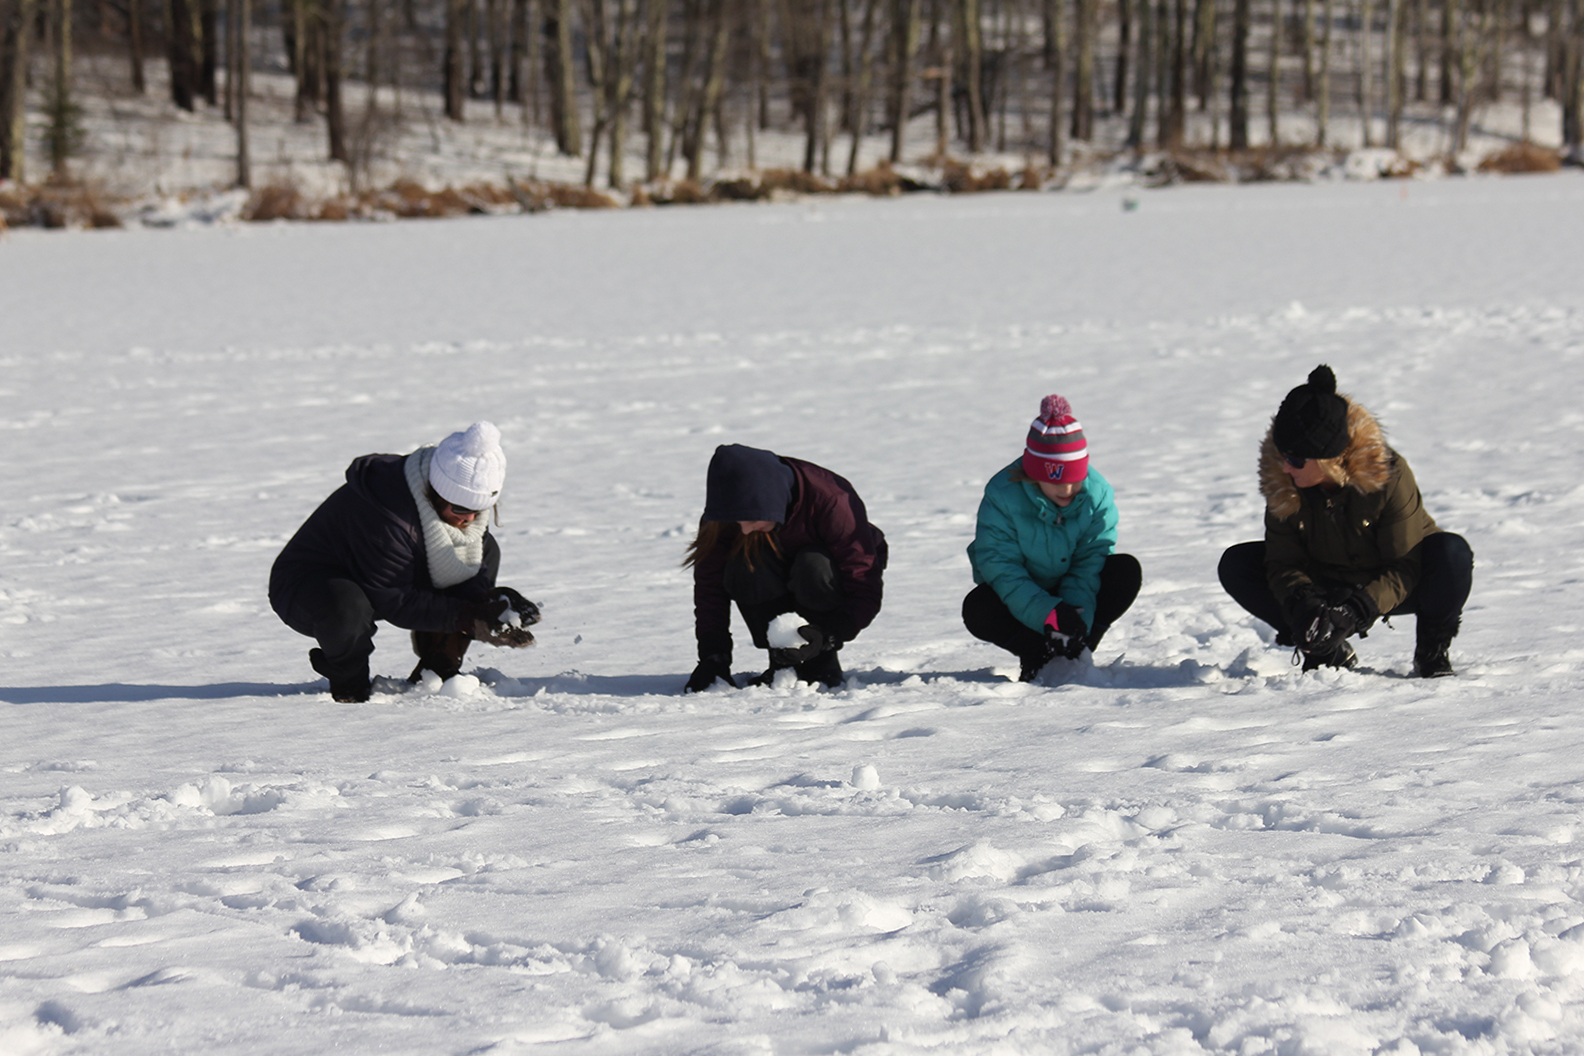 Actually, first things first: making snowballs in the middle of a frozen pond.